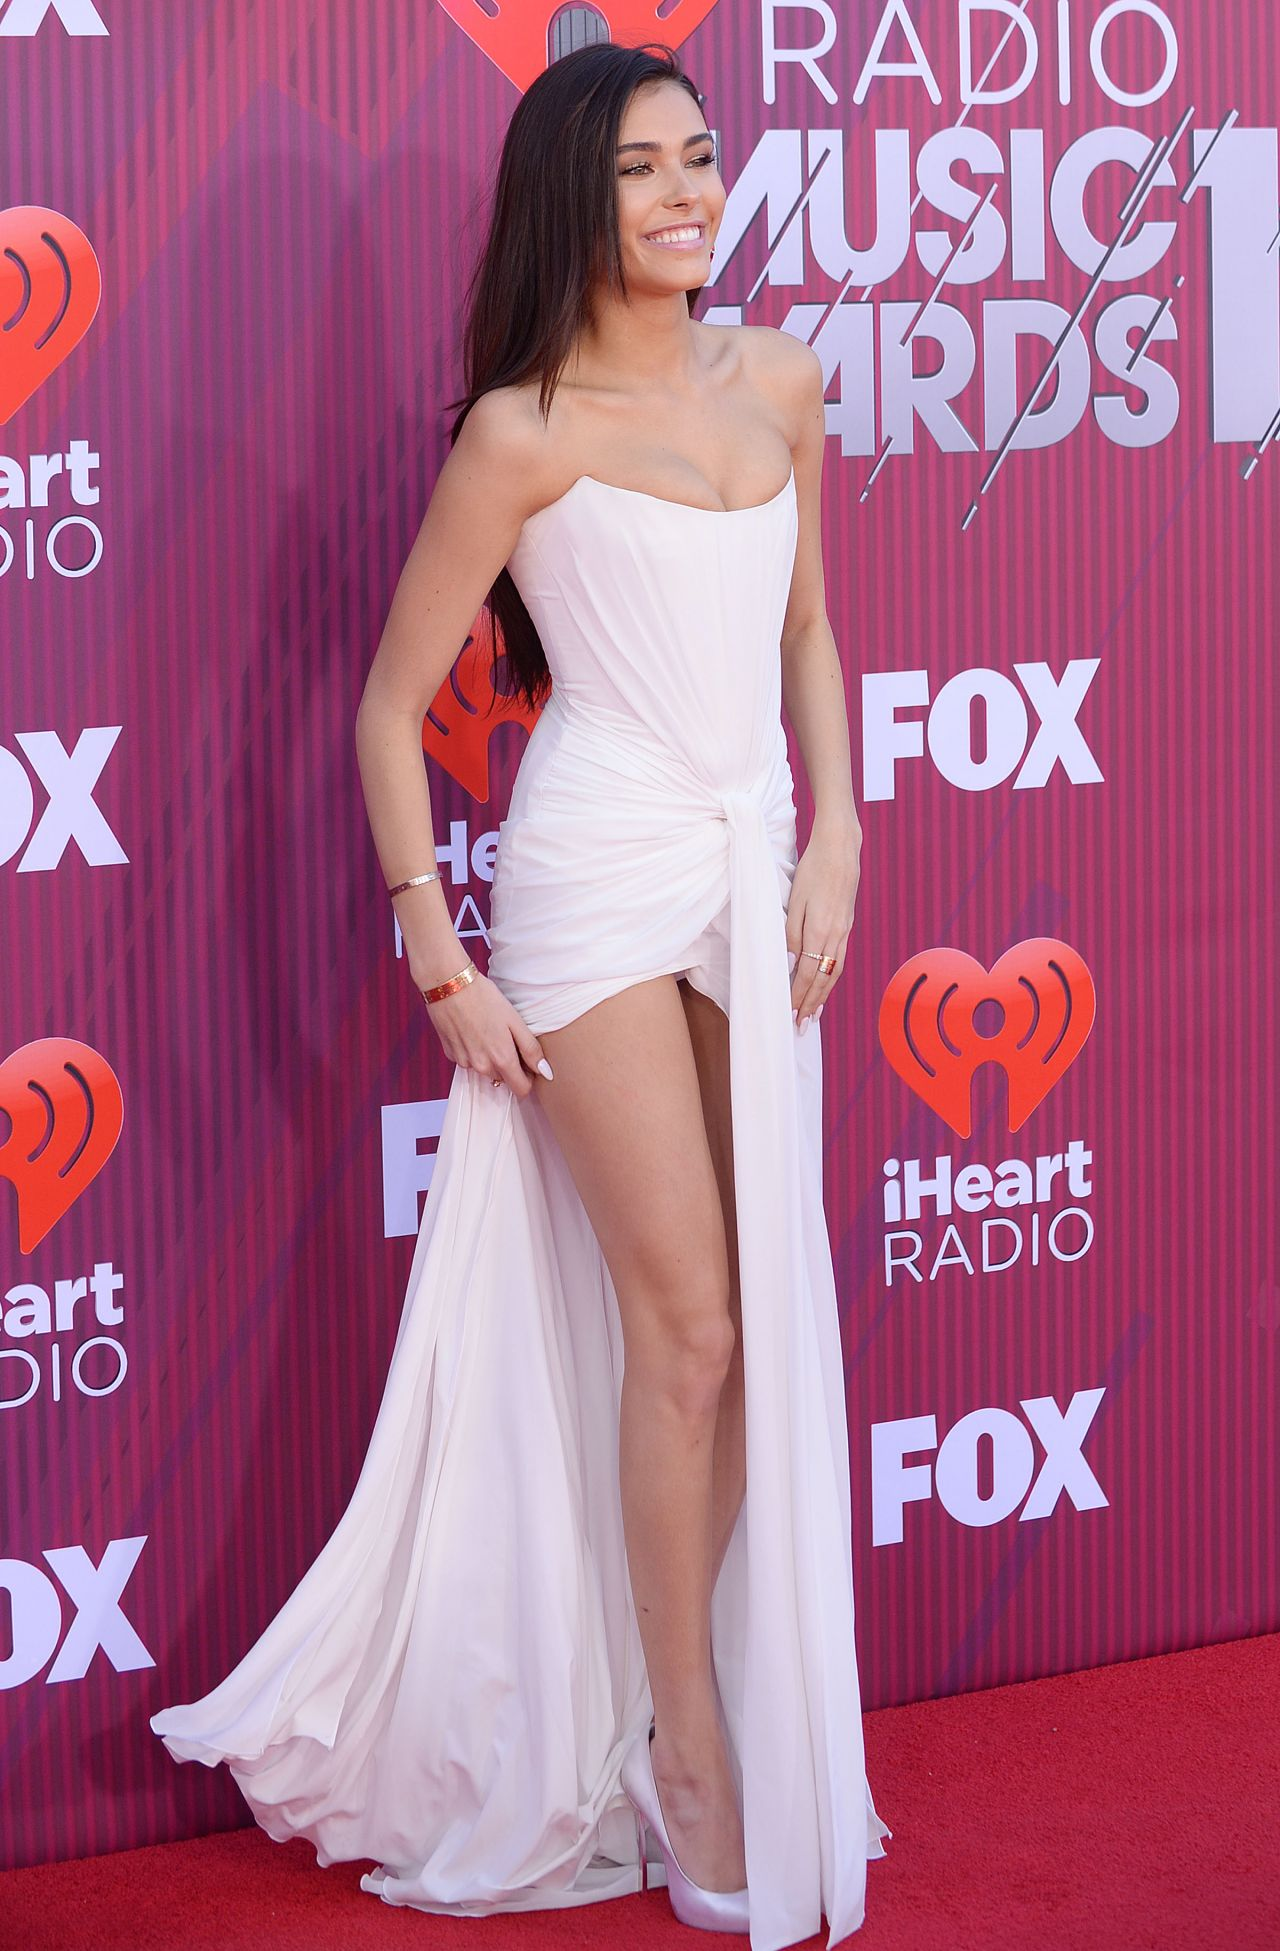 Madison Beer Iheartradio Related Keywords & Suggestions